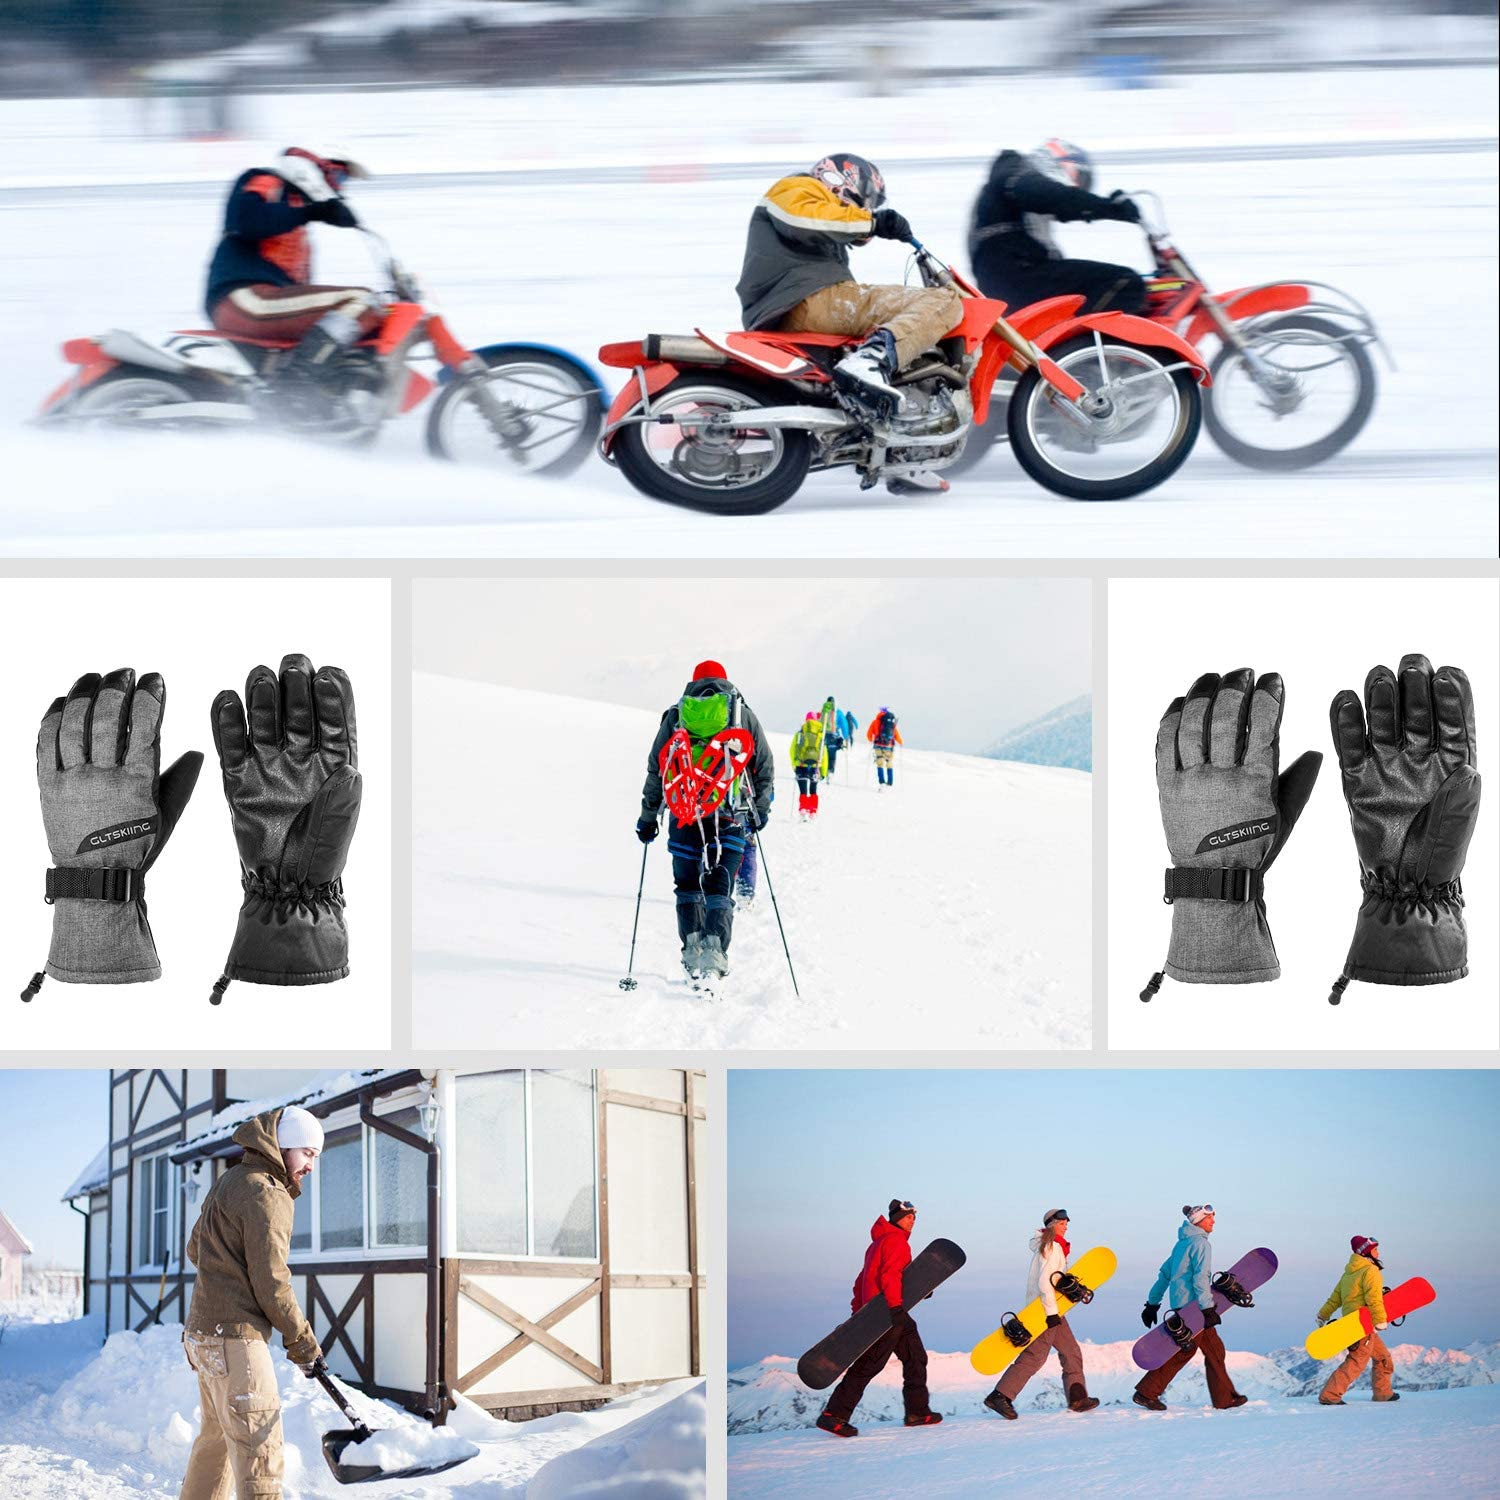 HiCool Winter Ski Gloves for Men Women Double Layer Thicken Warm Snowboard Waterproof Cold Weather Outdoor Gloves